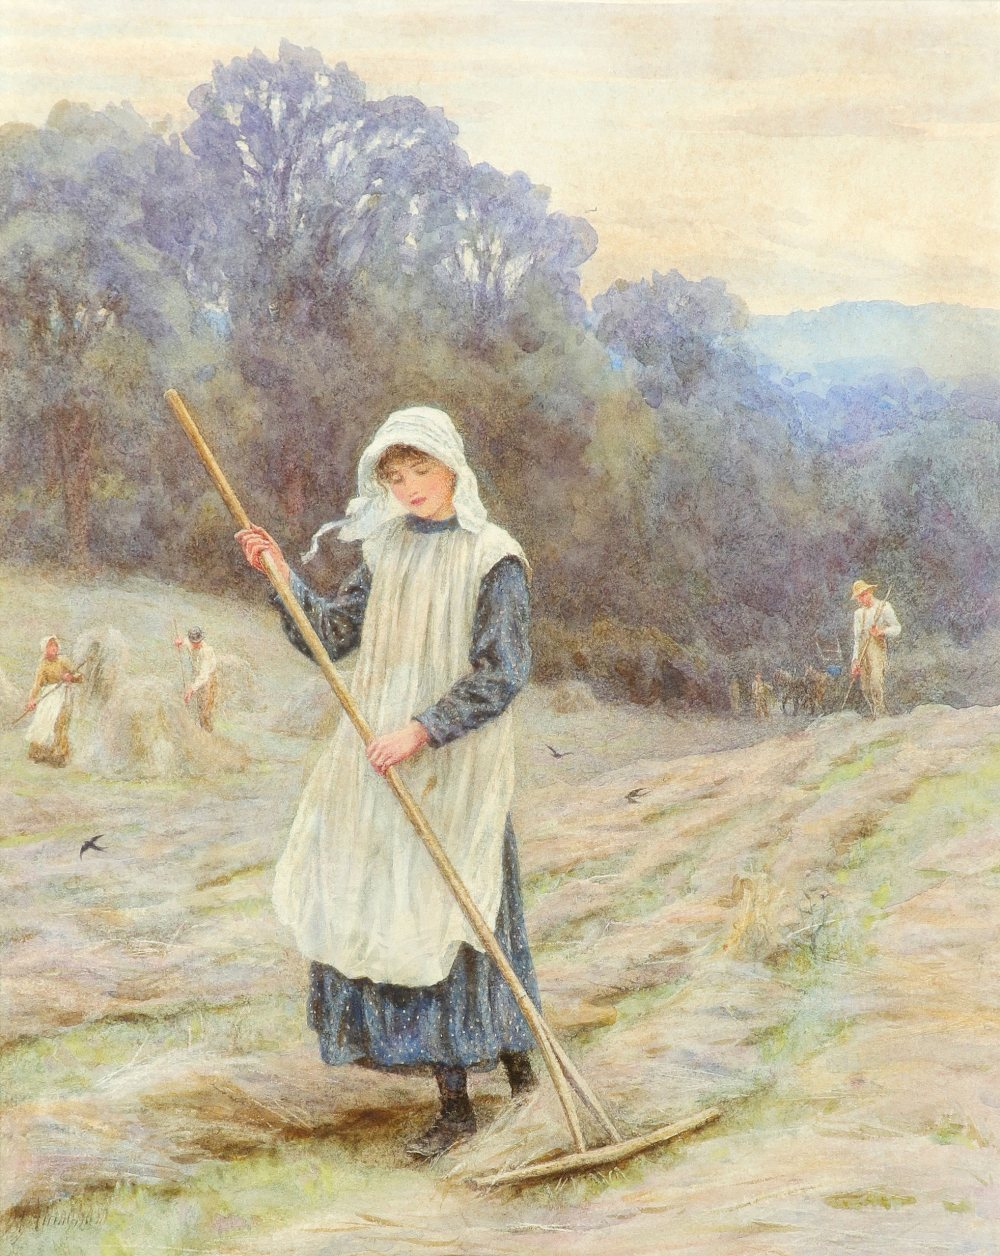 Helen Allingham RWS (1848-1926) Haymaking Signed H Allingham (lower left) Pencil and watercolour